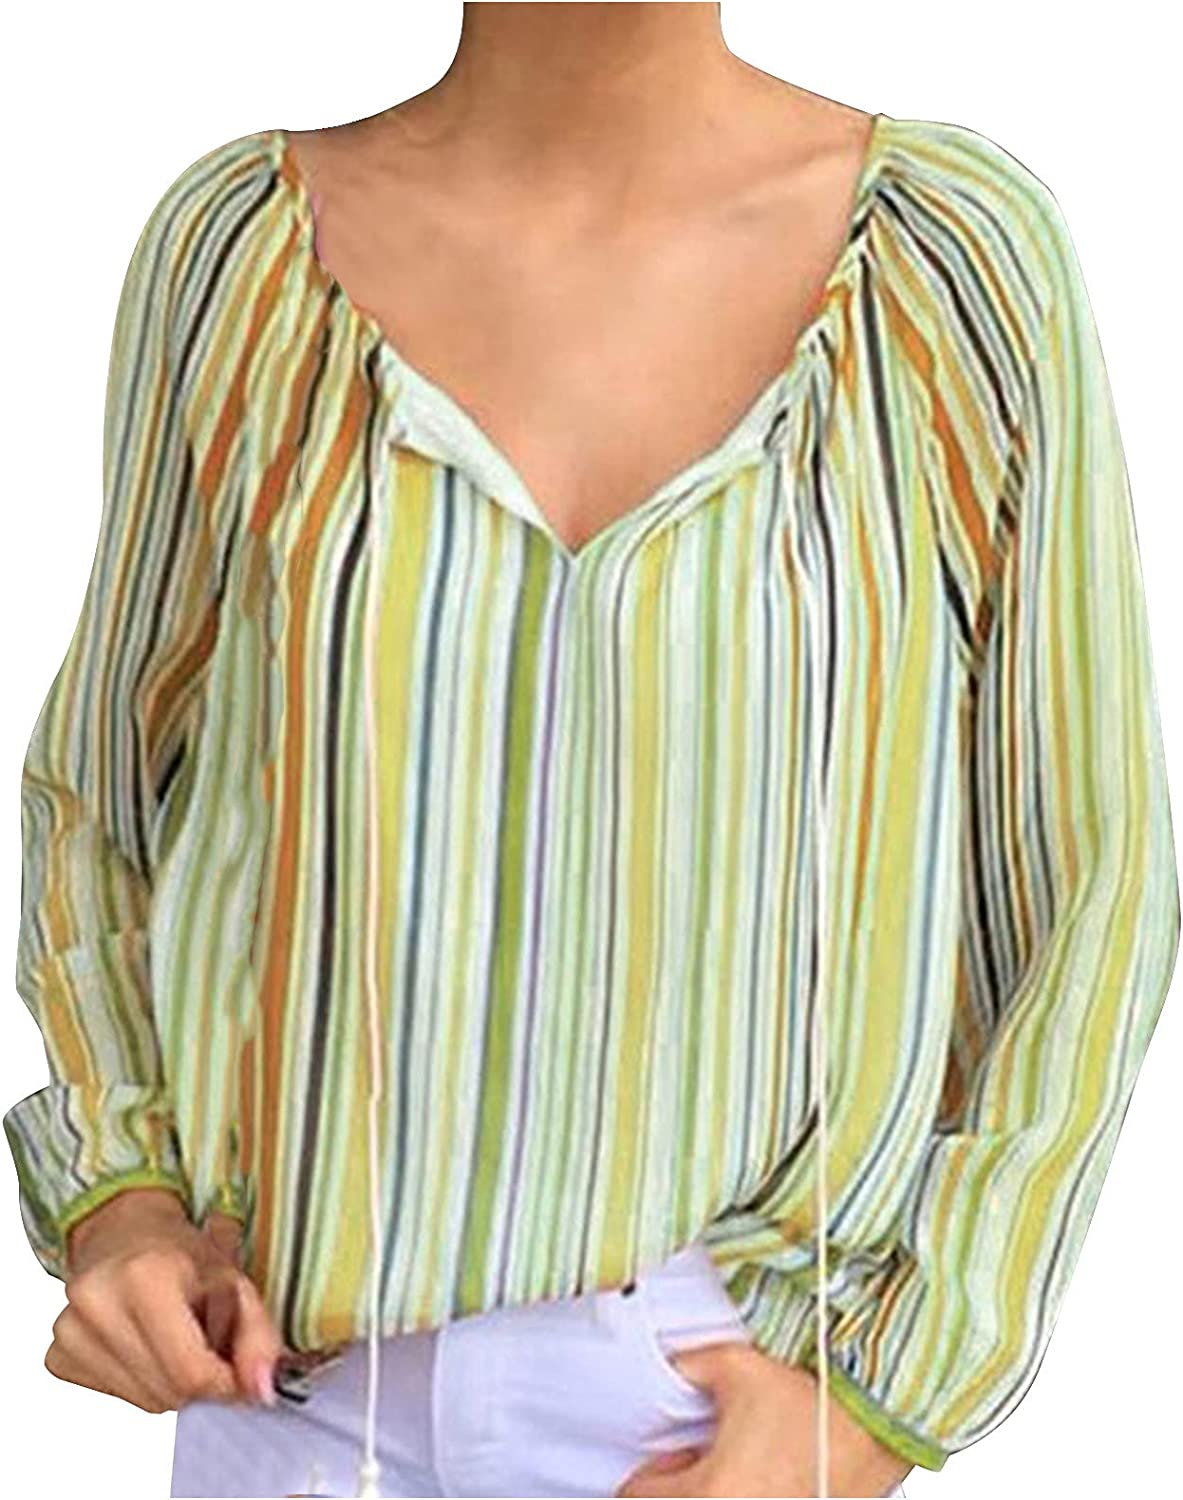 Fashion Blouse for Women V Neck Long Sleeve Vertical Striped T-Shirt Colorful Drawstring Casual Top for Spring